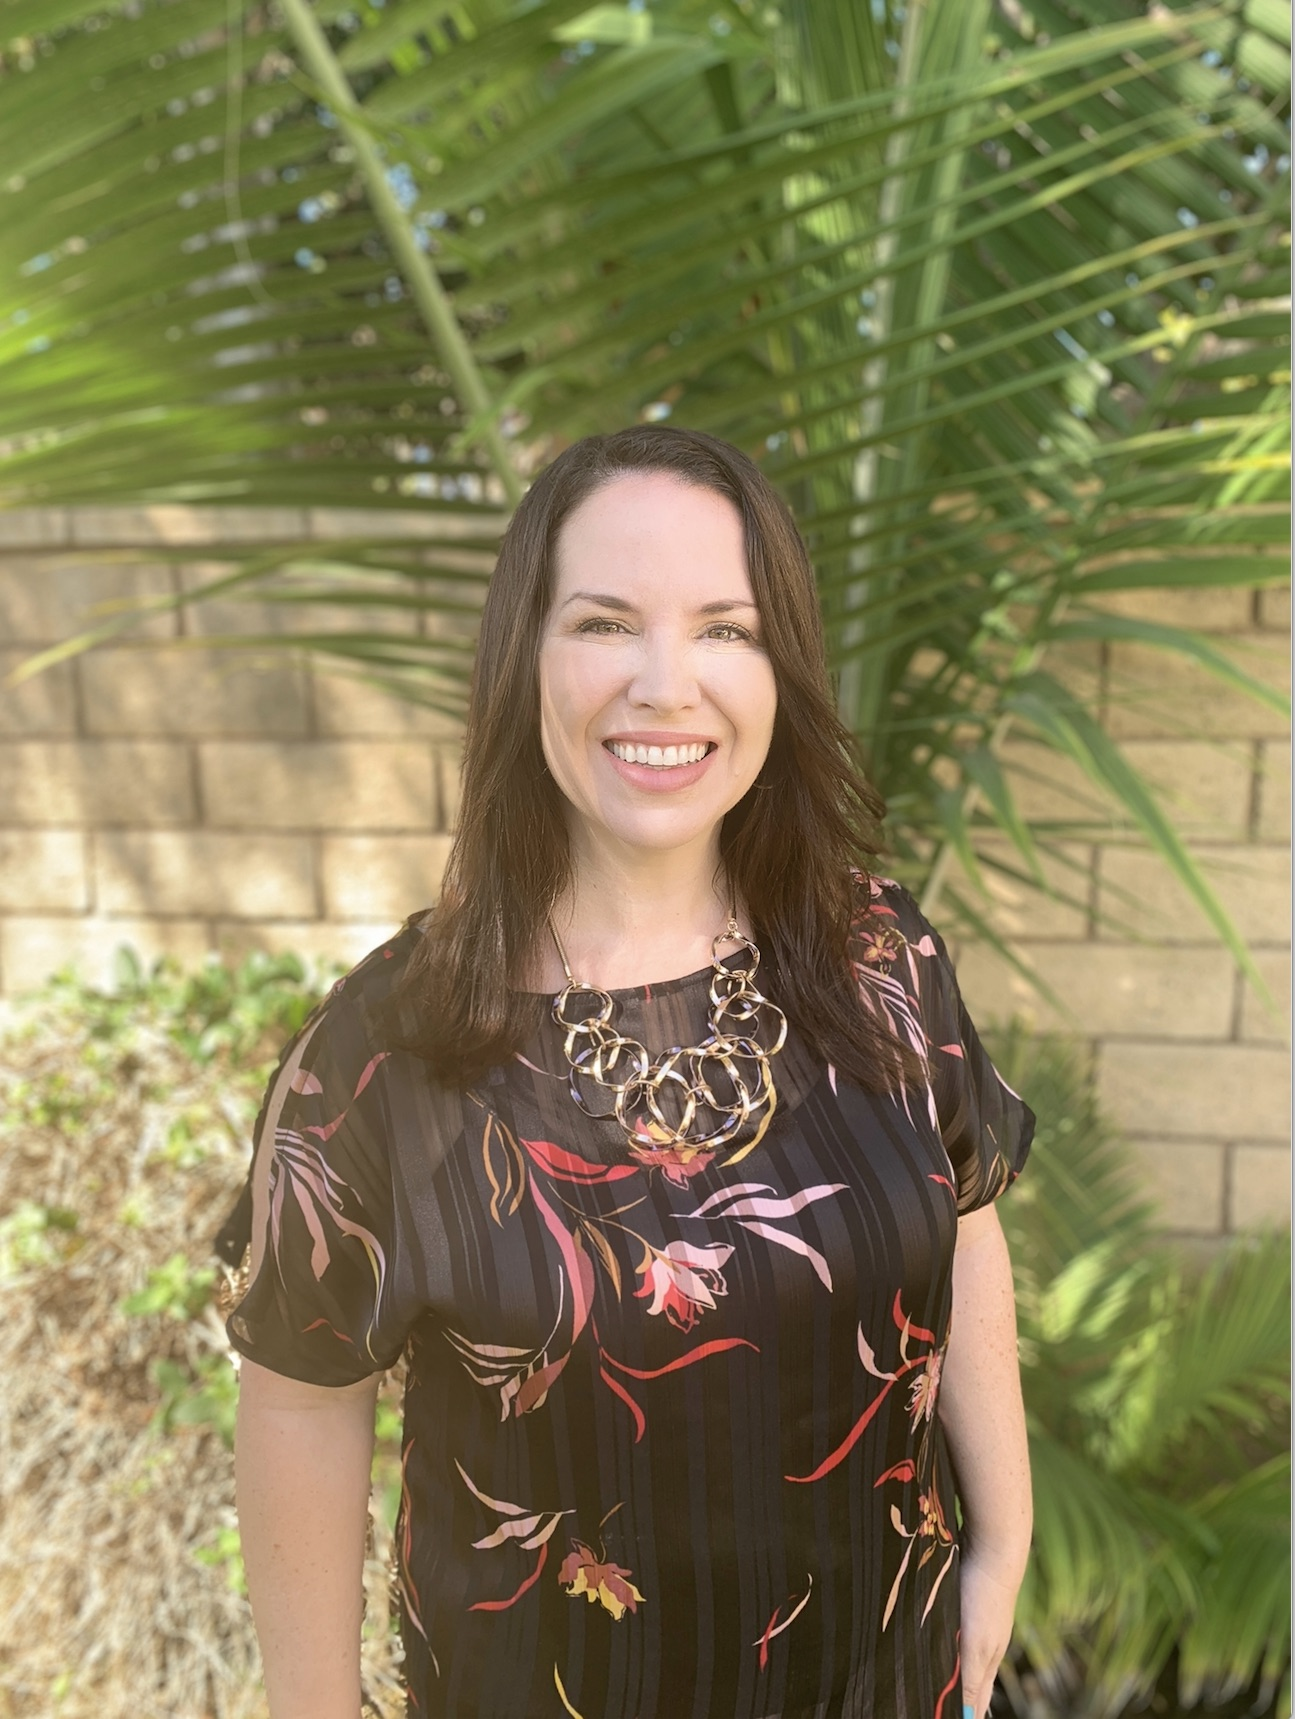 Headshot of Dr. Edlyn Peña, smiling in a black floral dress, standing in front of a  palm tree.